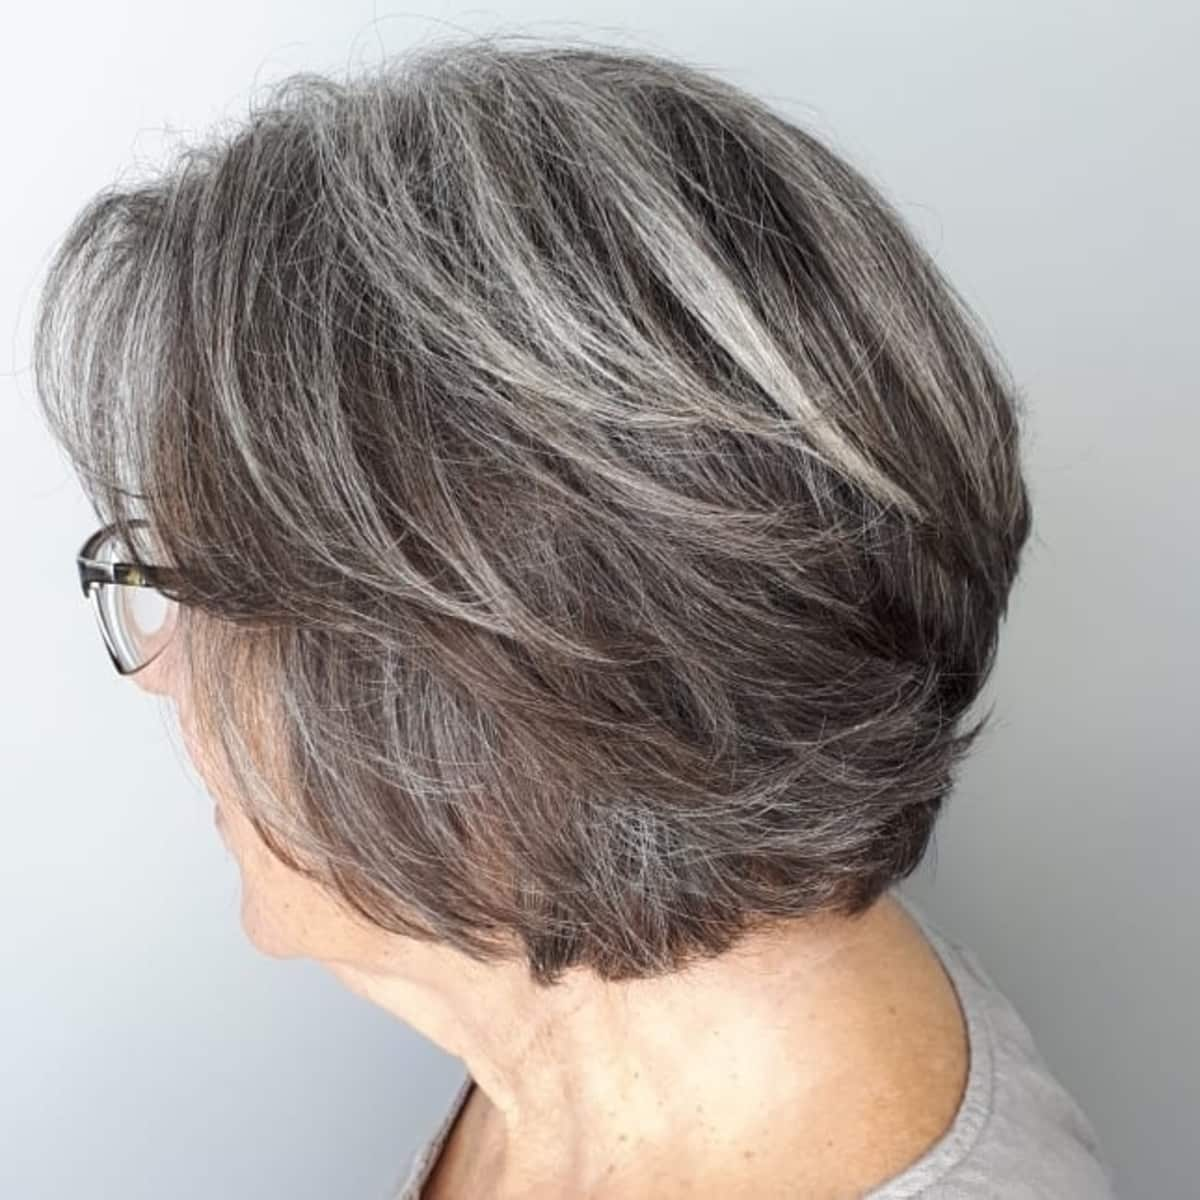 15 Flattering Short Hairstyles for Women Over 60 with Glasses